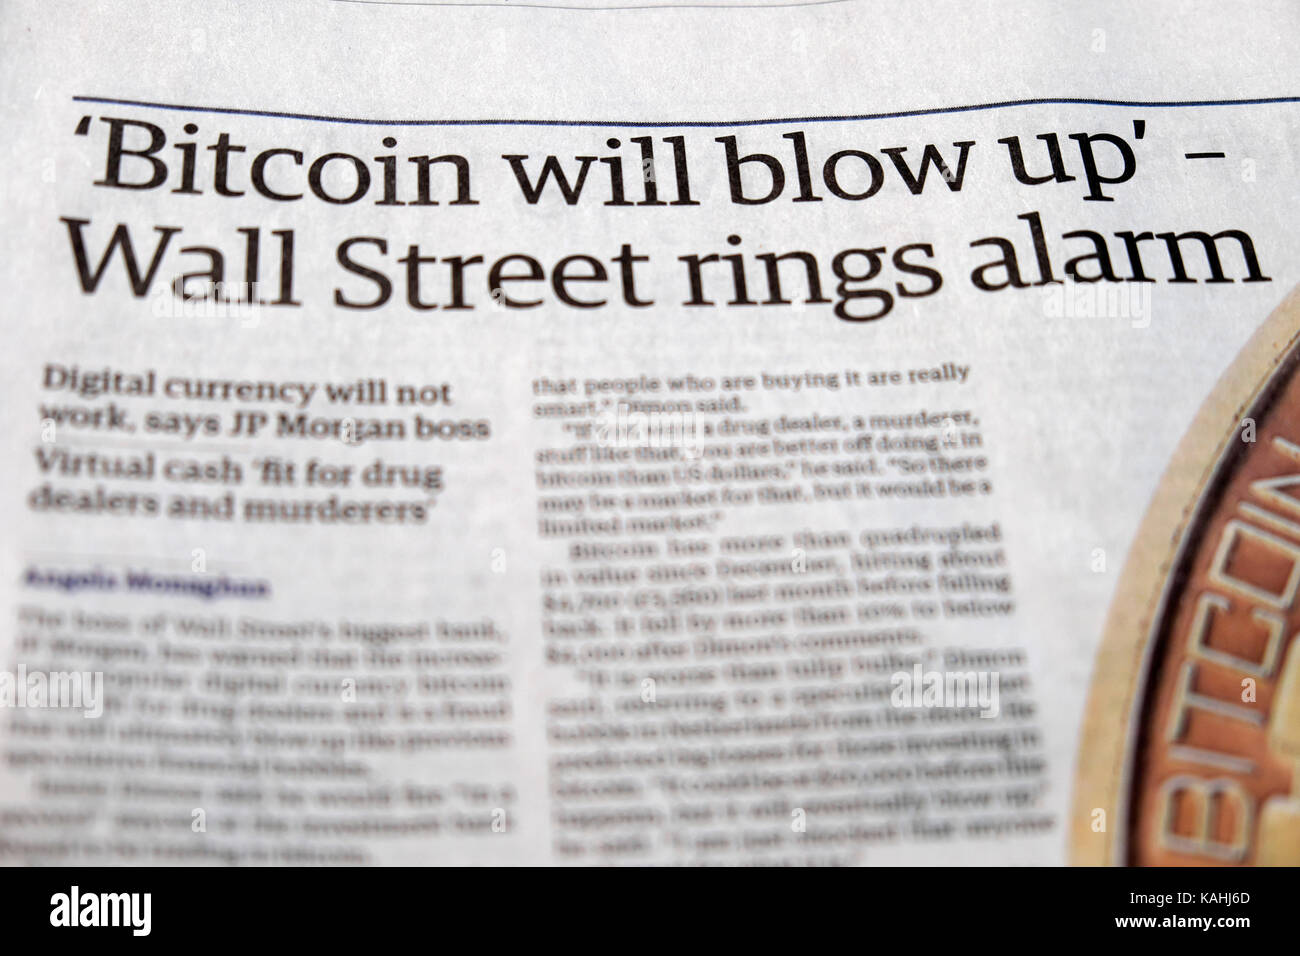 Bitcoin will blow up wall street rings alarm guardian newspaper bitcoin will blow up wall street rings alarm guardian newspaper article 14 september 2017 ccuart Images